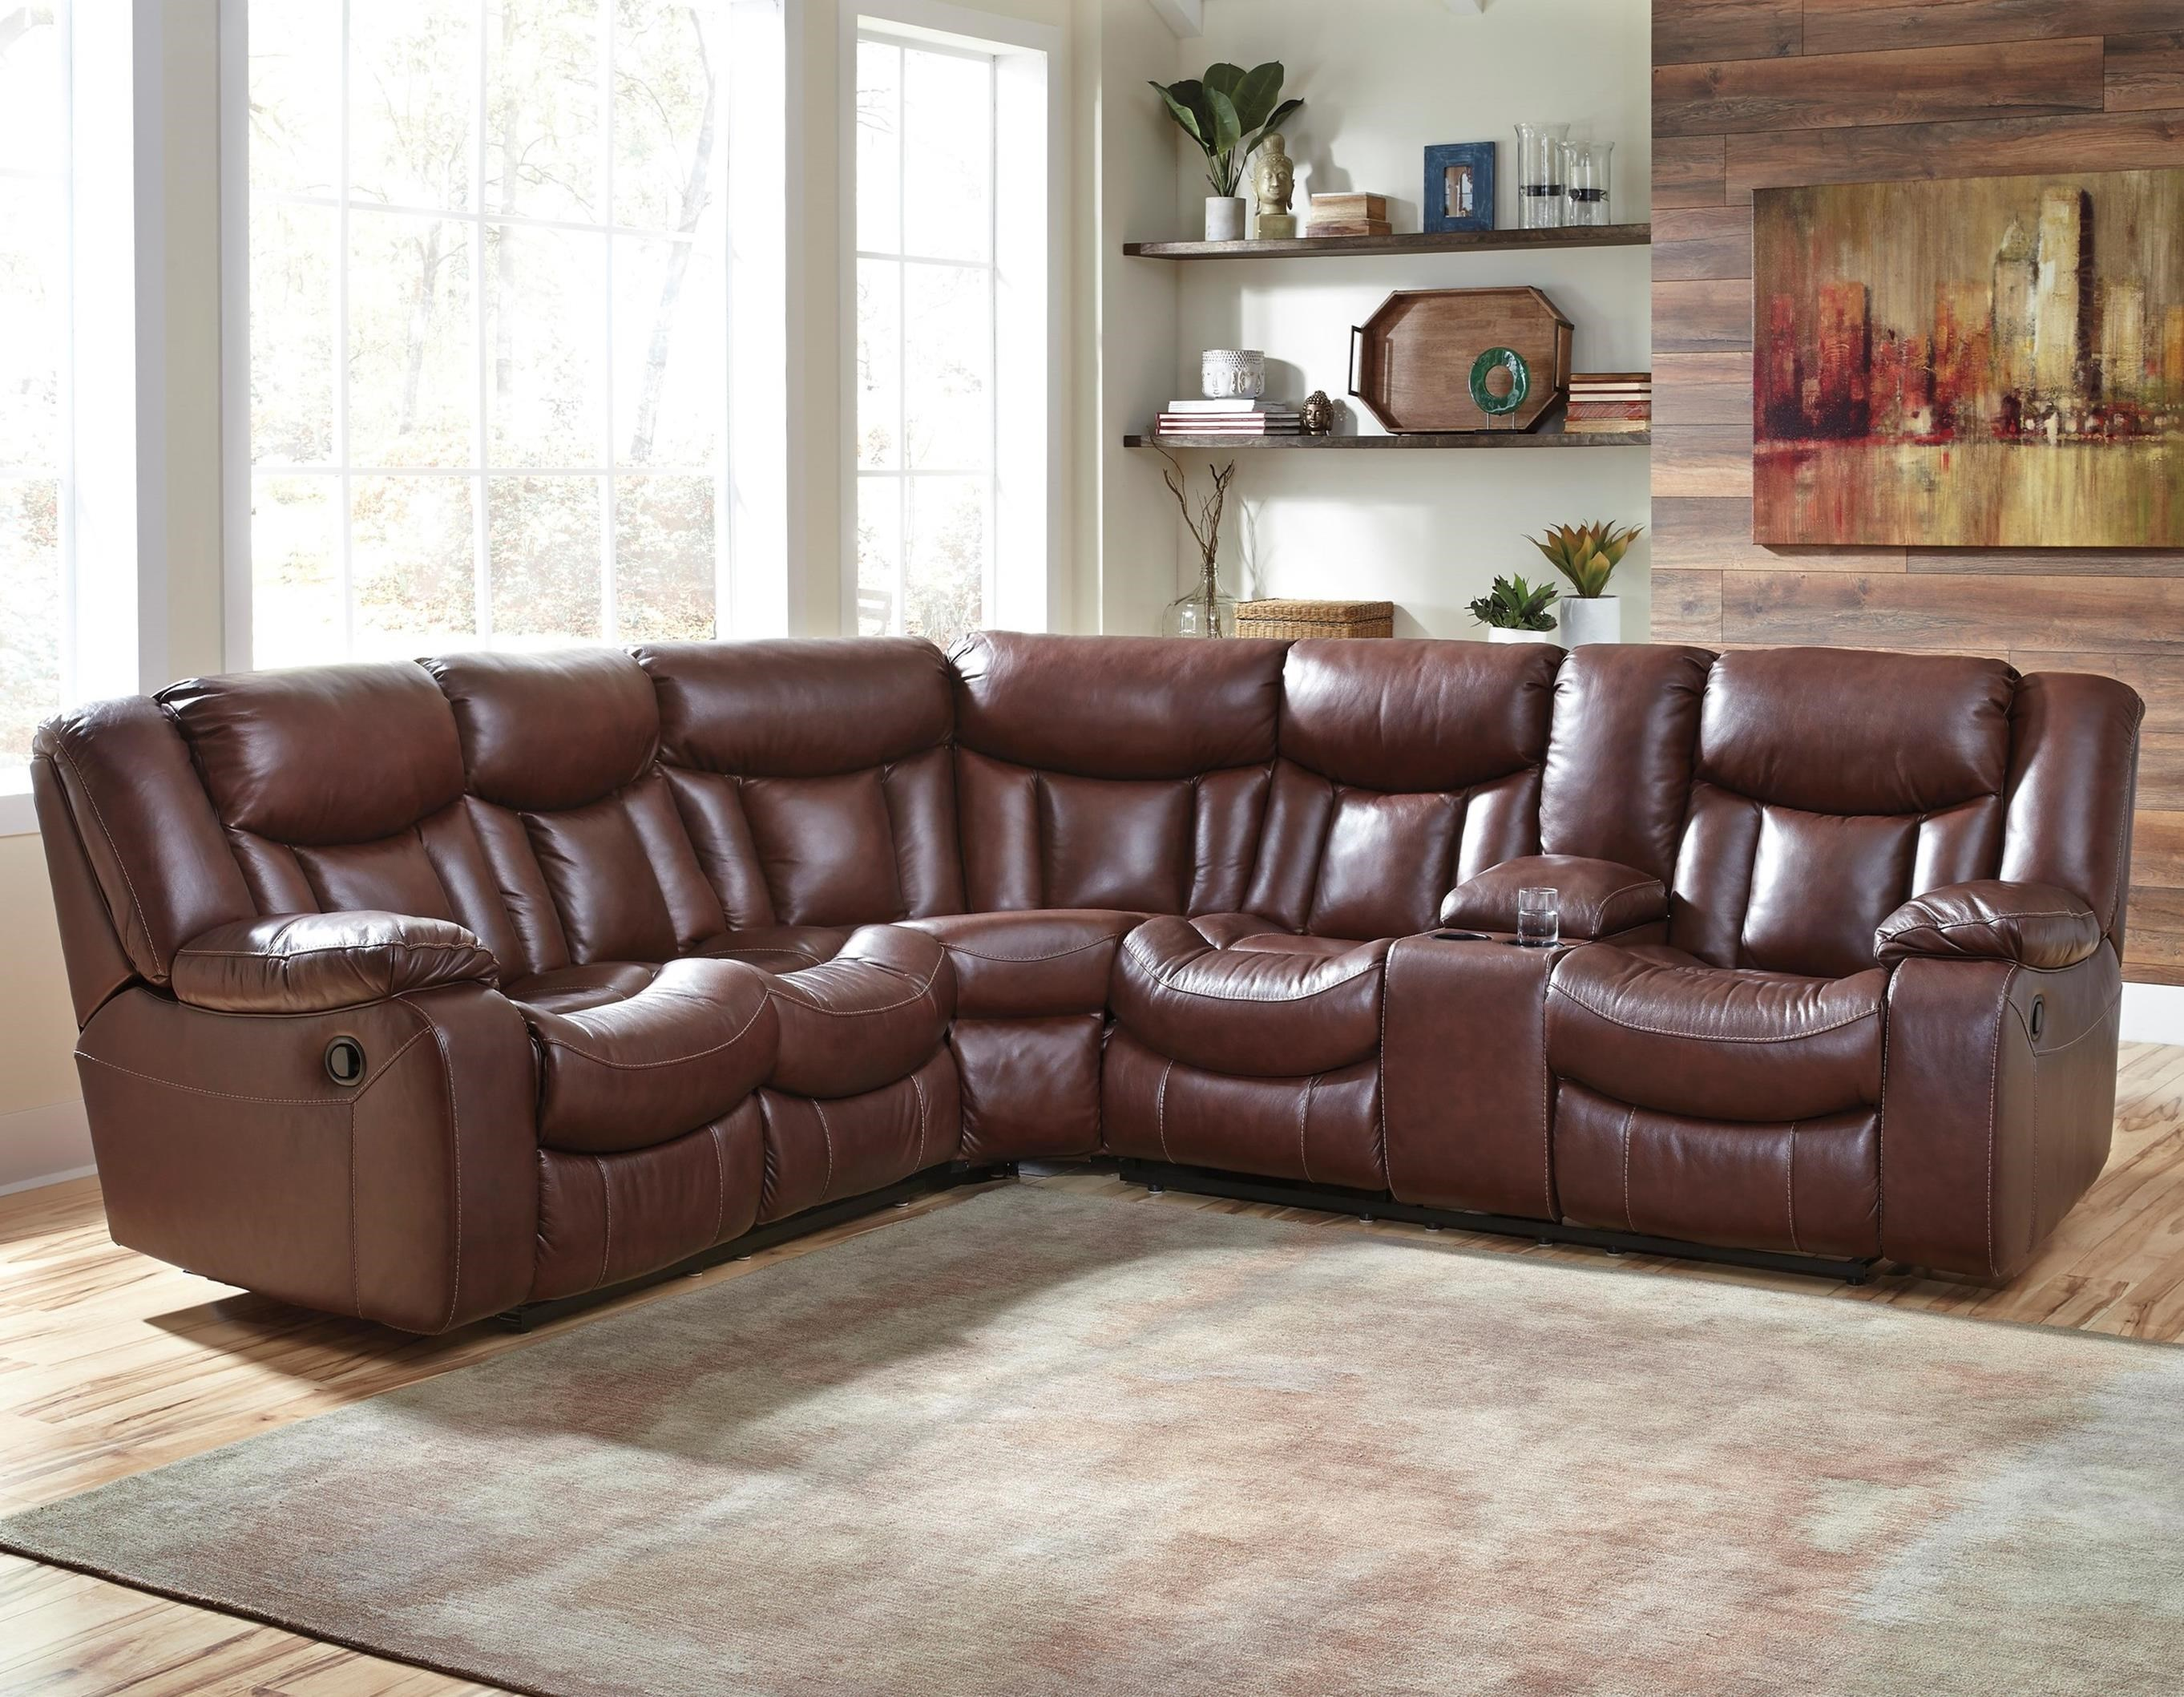 Benchcraft Amaroo Brown Leather Match 2 Piece Reclining Sectional